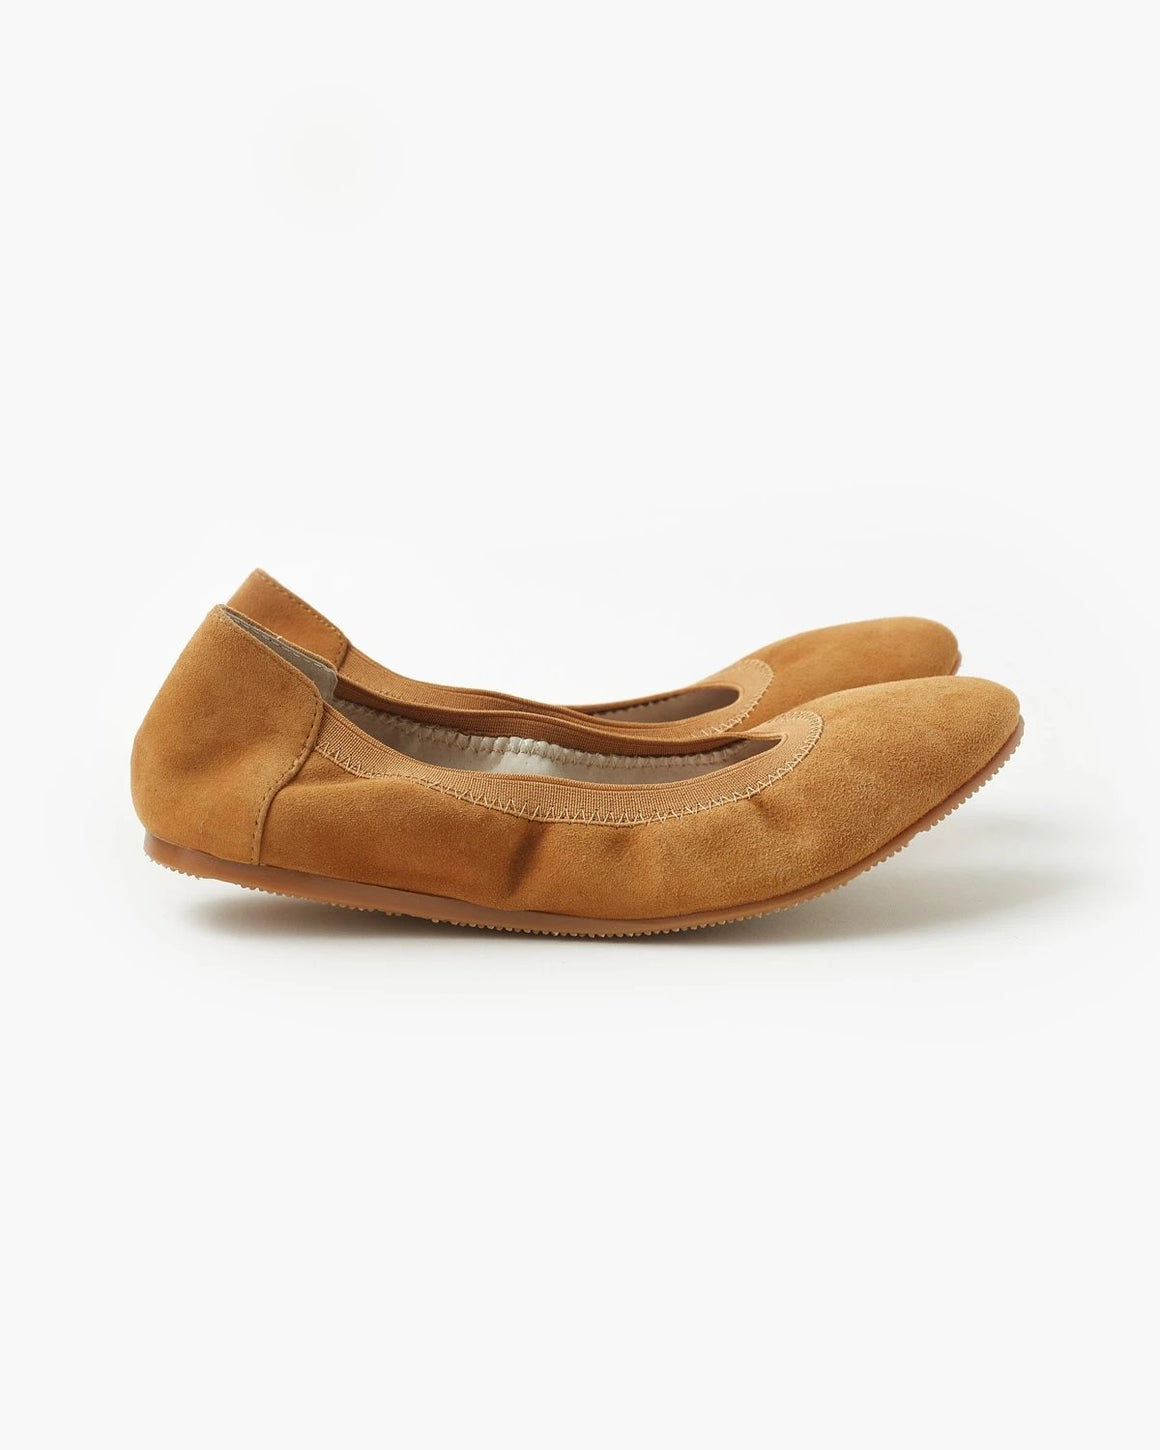 Ava Leather Ballet Flat - Tan